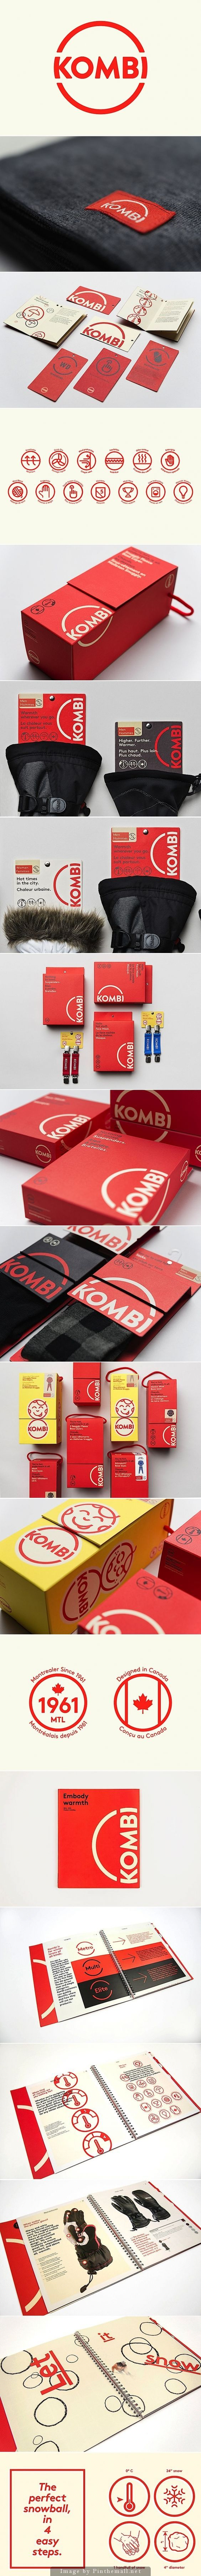 Kombi Branding on Behance | Fivestar Branding – Design and Branding Agency & Inspiration Gallery